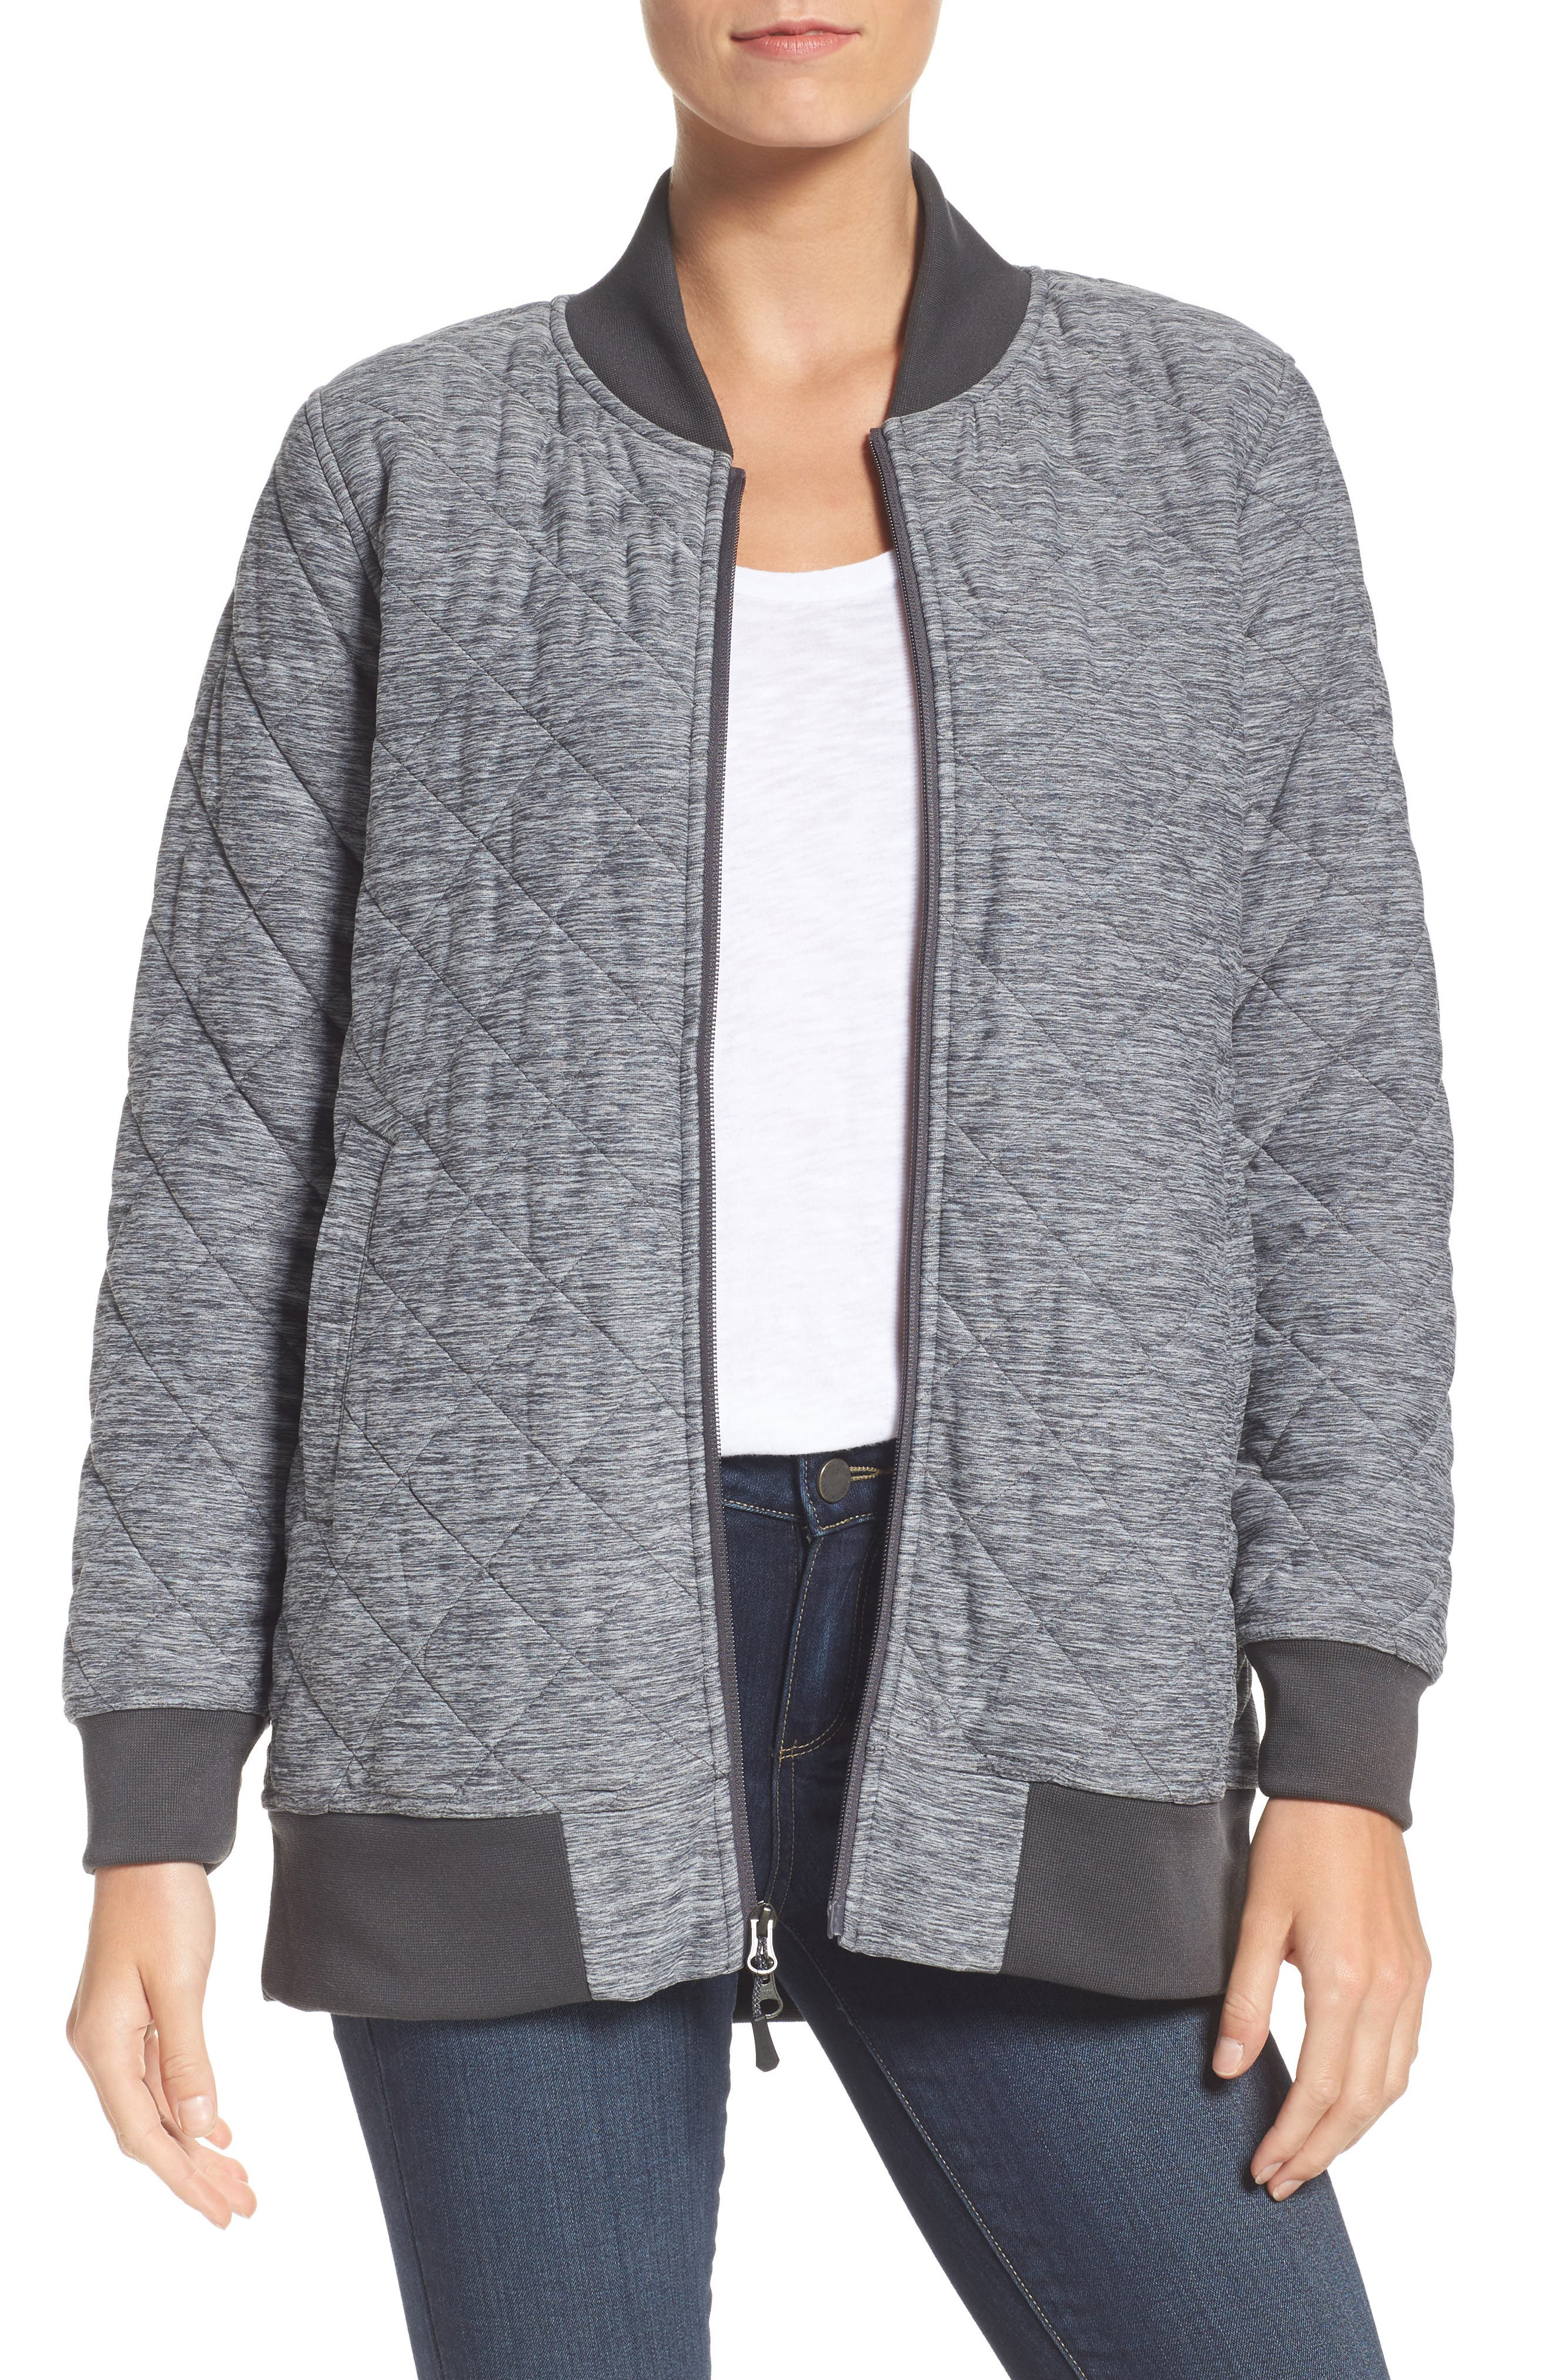 Alternate Image 1 Selected - The North Face Mod Insulated Knit Jacket